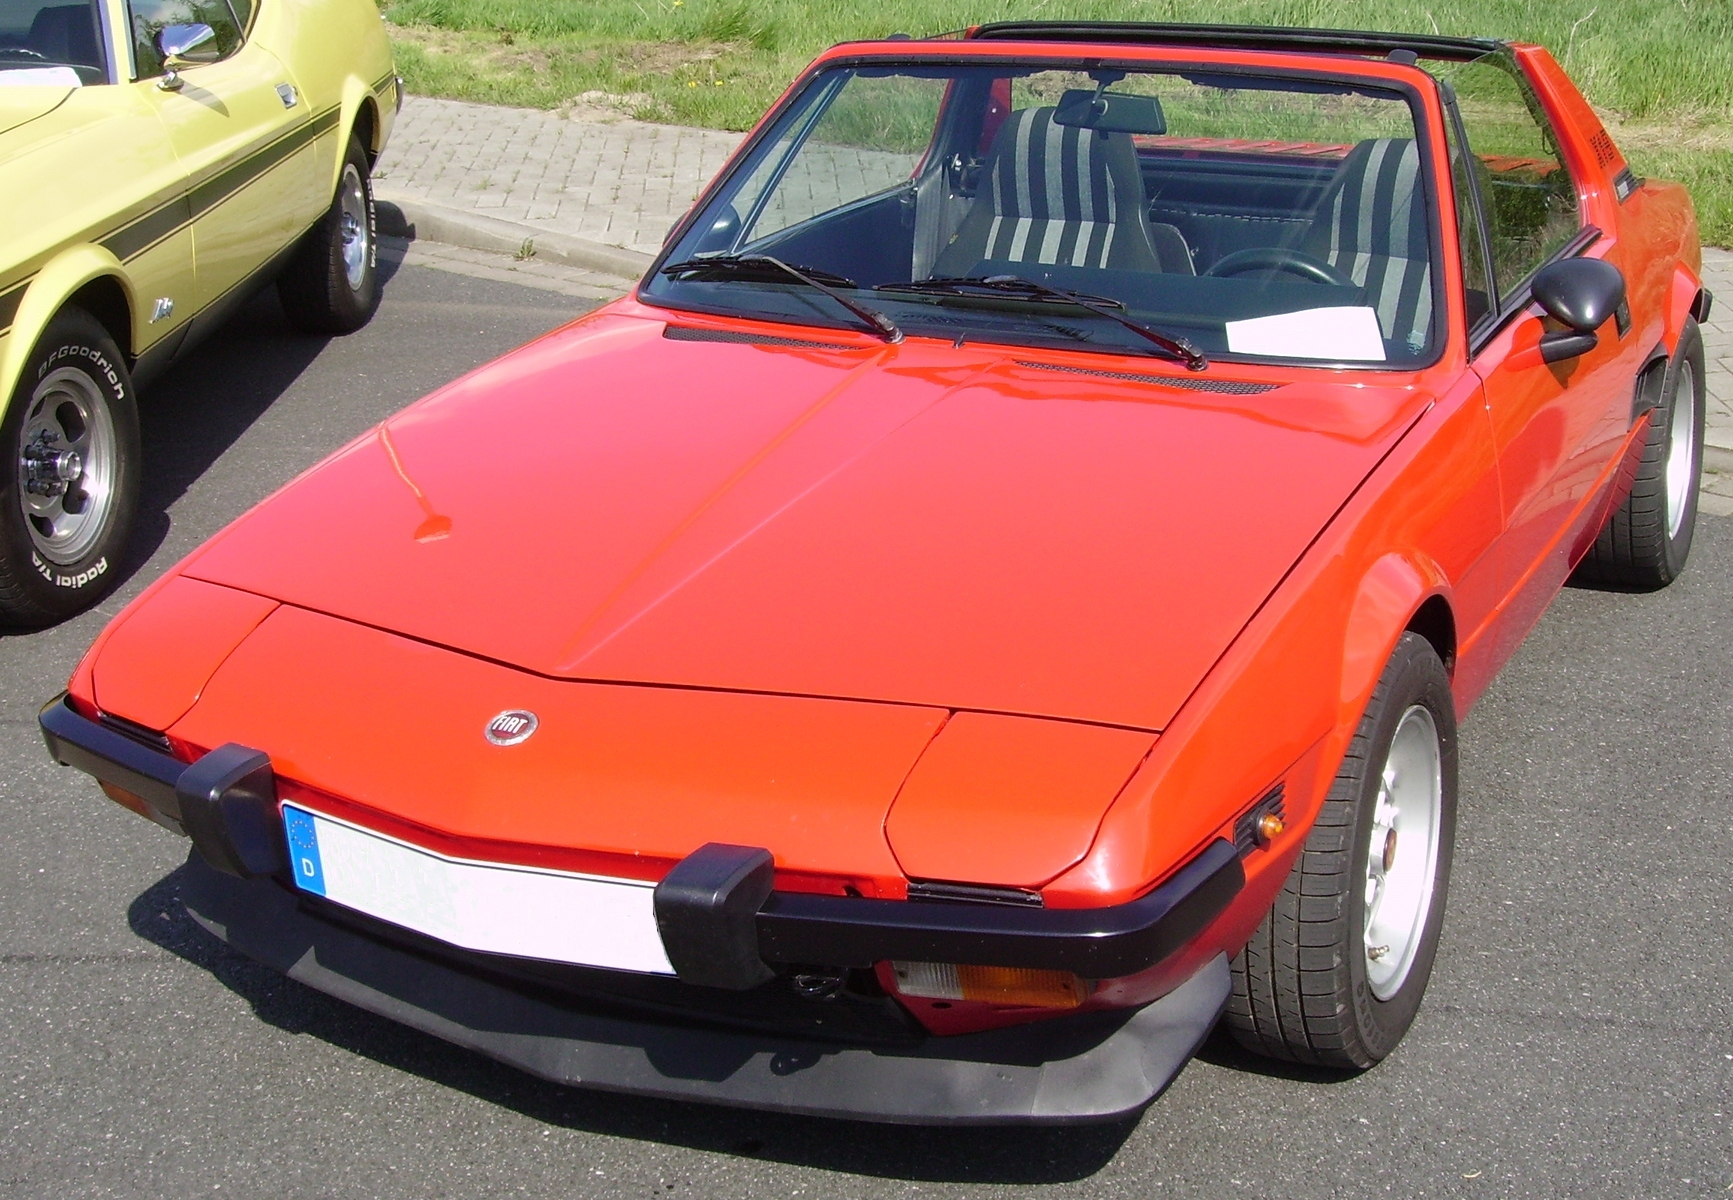 Fiat X1 9 Wikiwand HD Wallpapers Download free images and photos [musssic.tk]